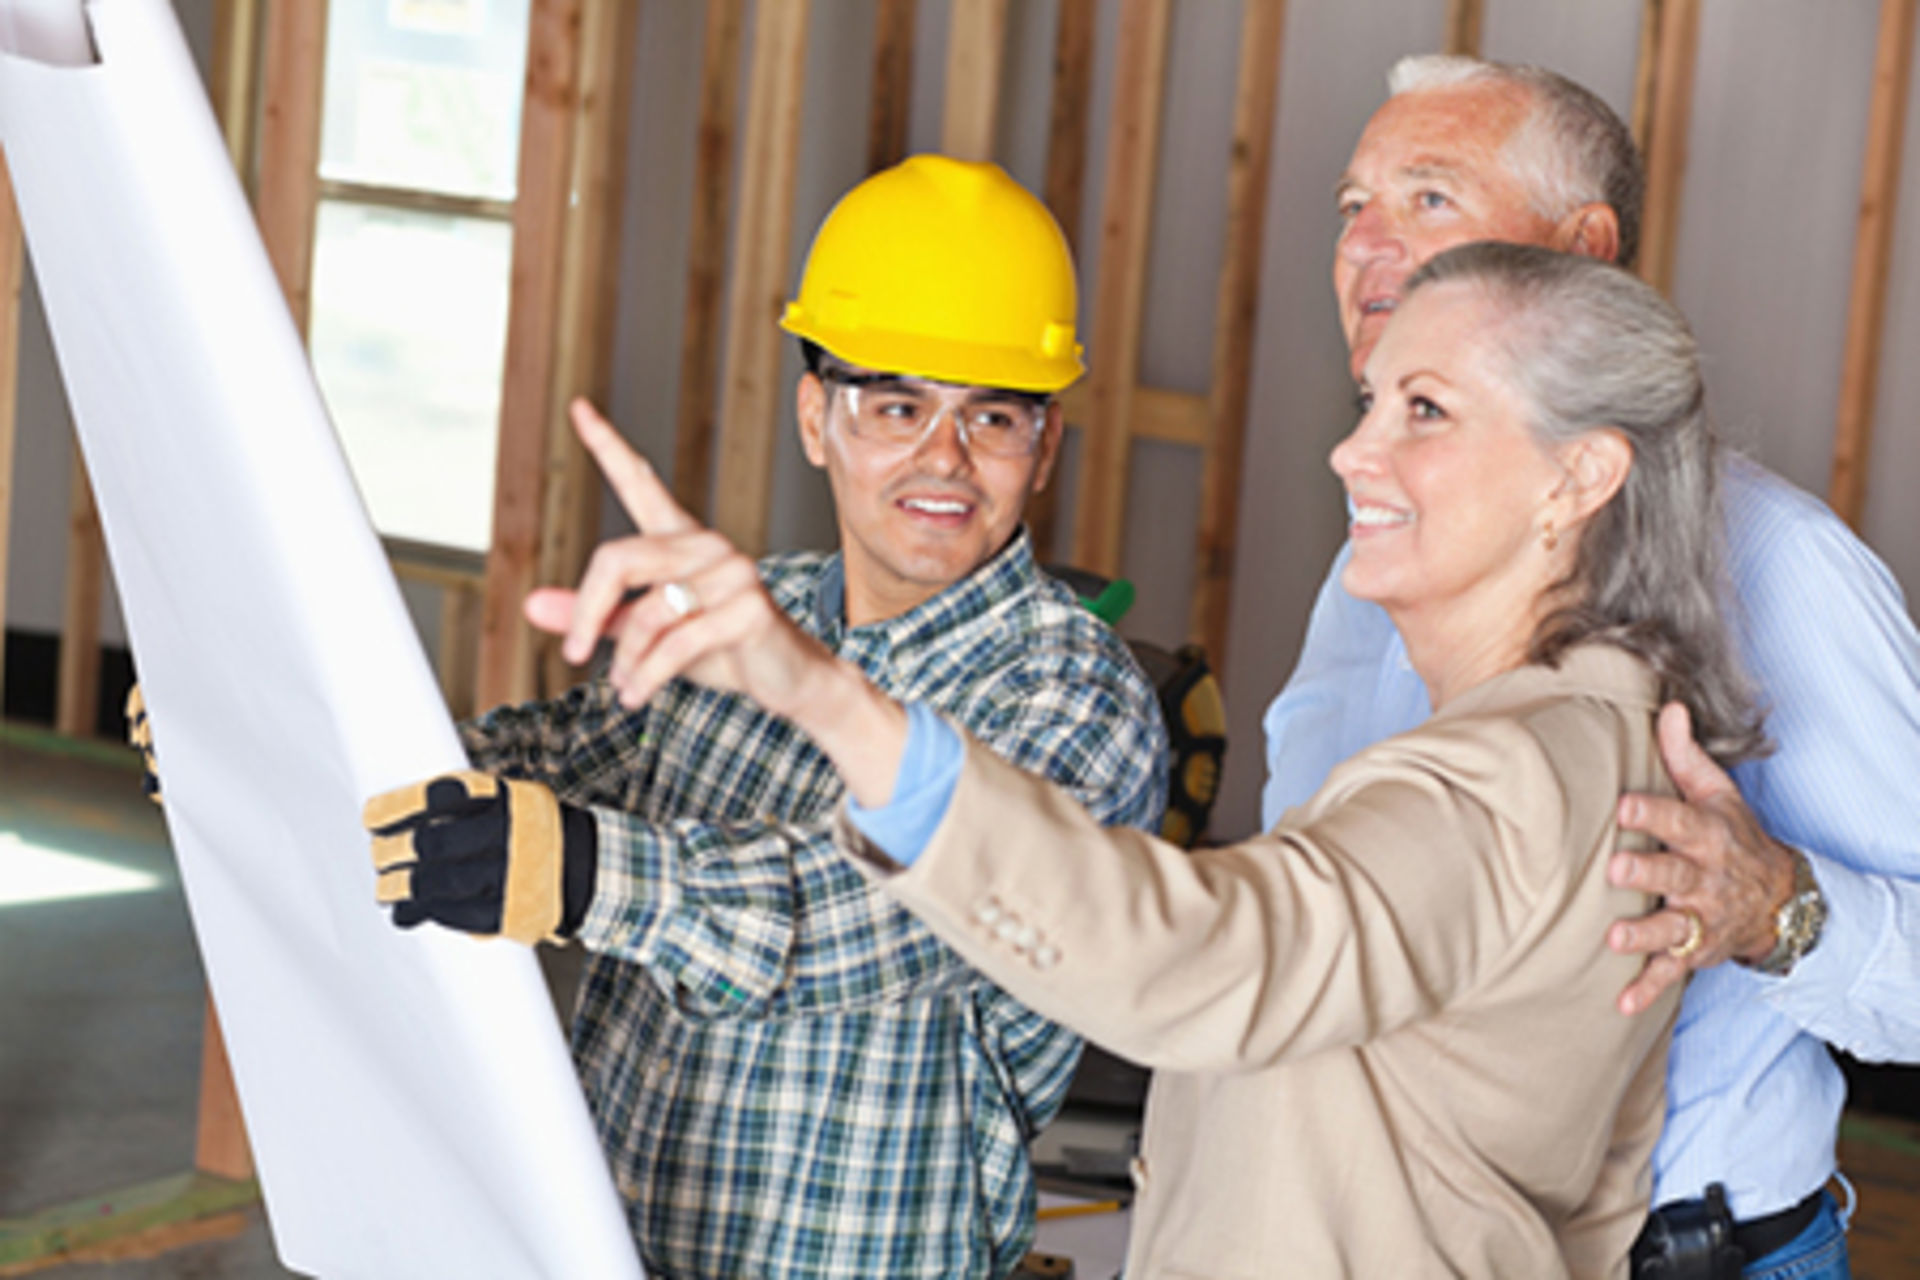 Homebuilders Are Betting on Baby Boomers